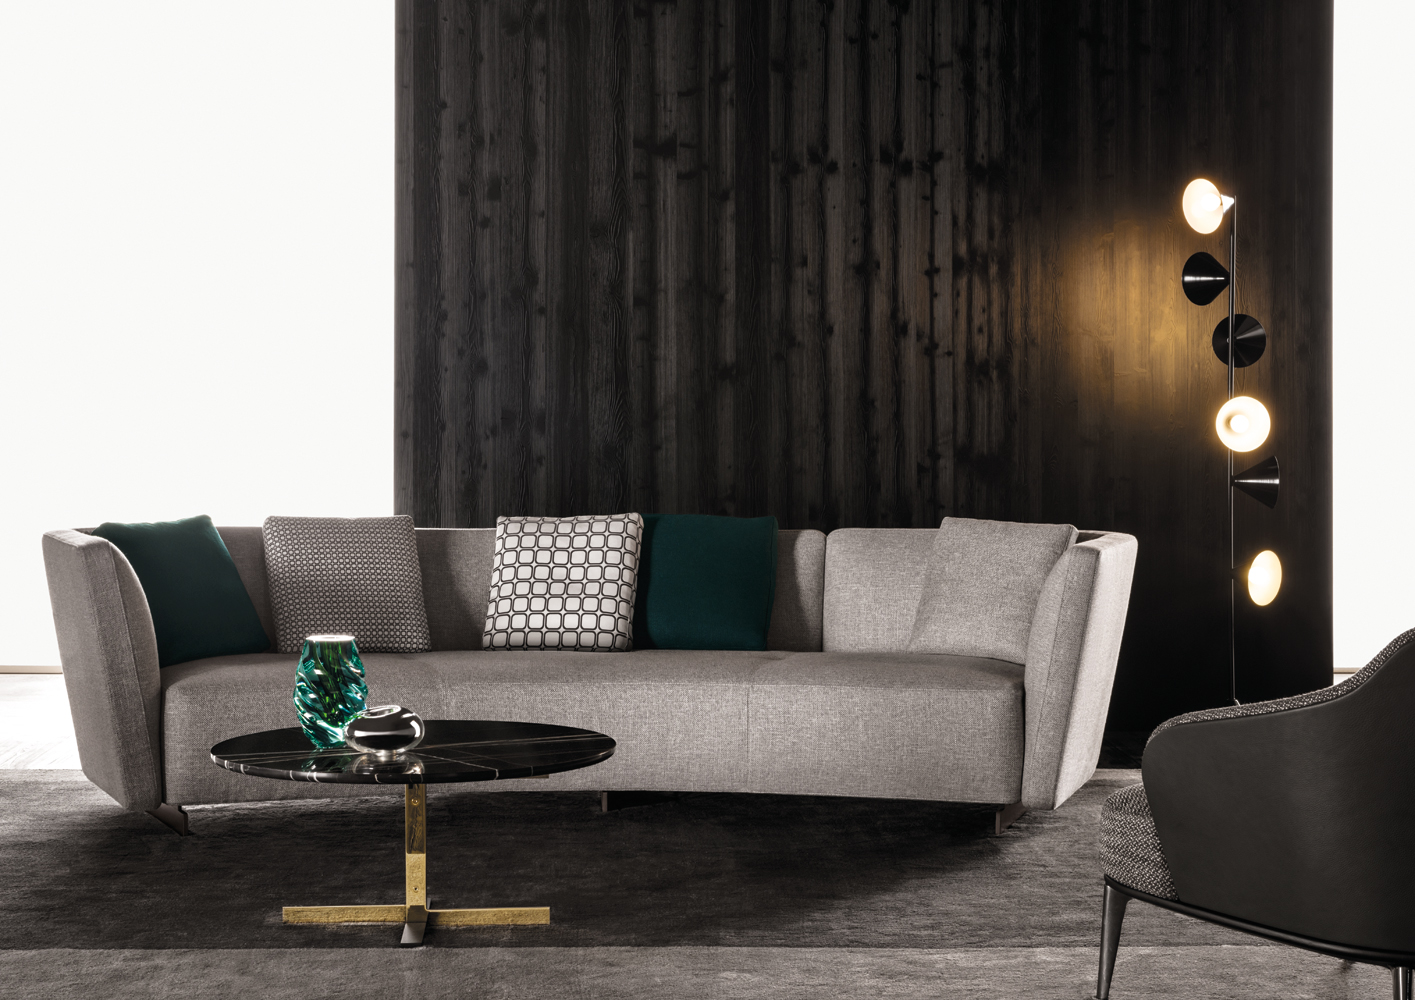 grey sofas leather mah jong sofa preisliste 20 modish minotti and seating systems